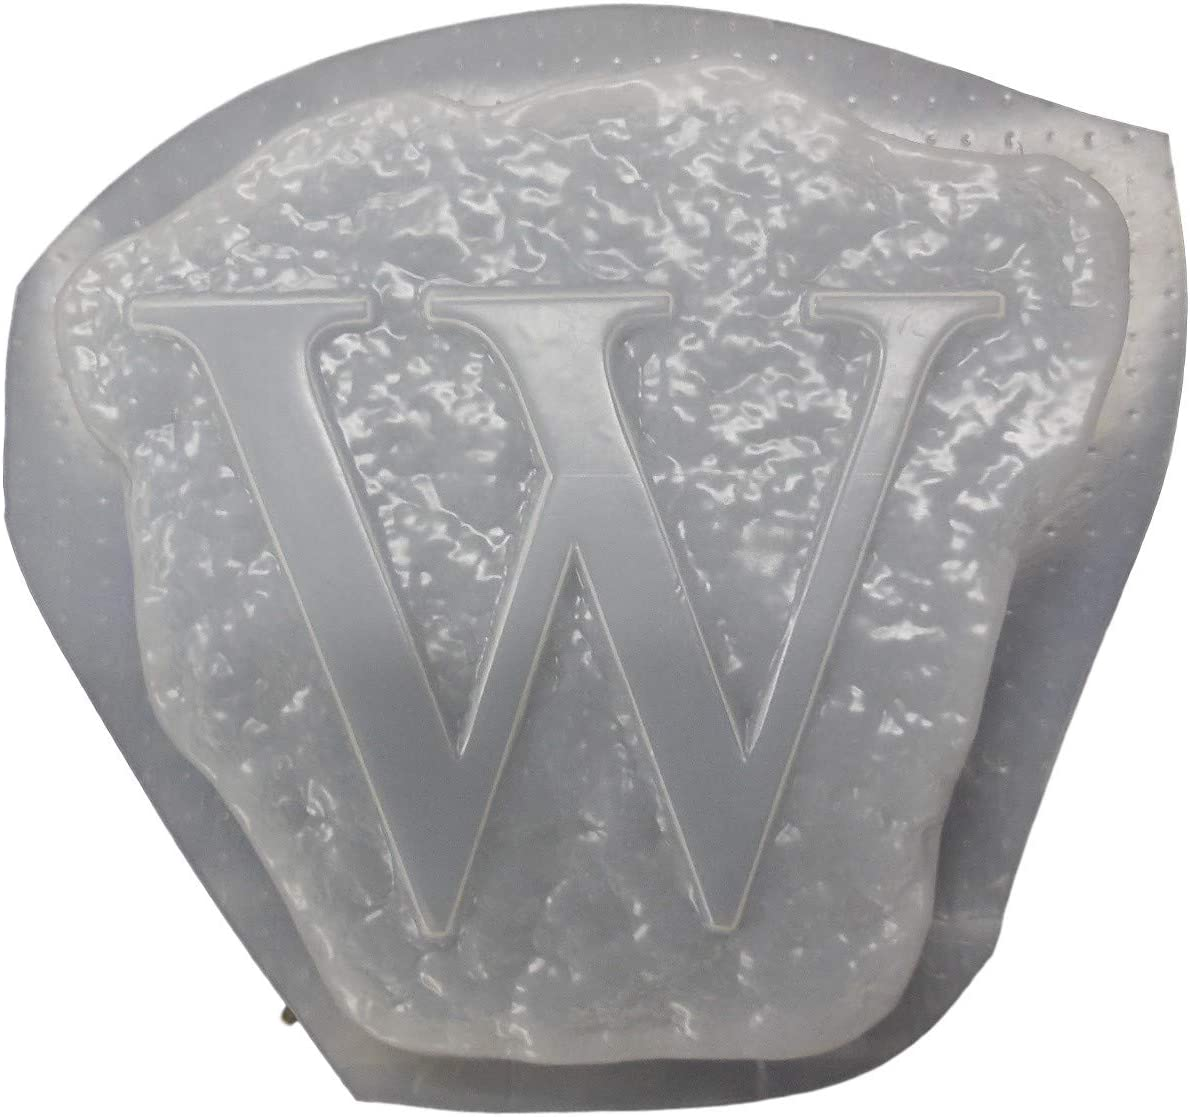 Alphabet Letter M Stepping Stone Plaster or Concrete Mold 1215 Moldcreations